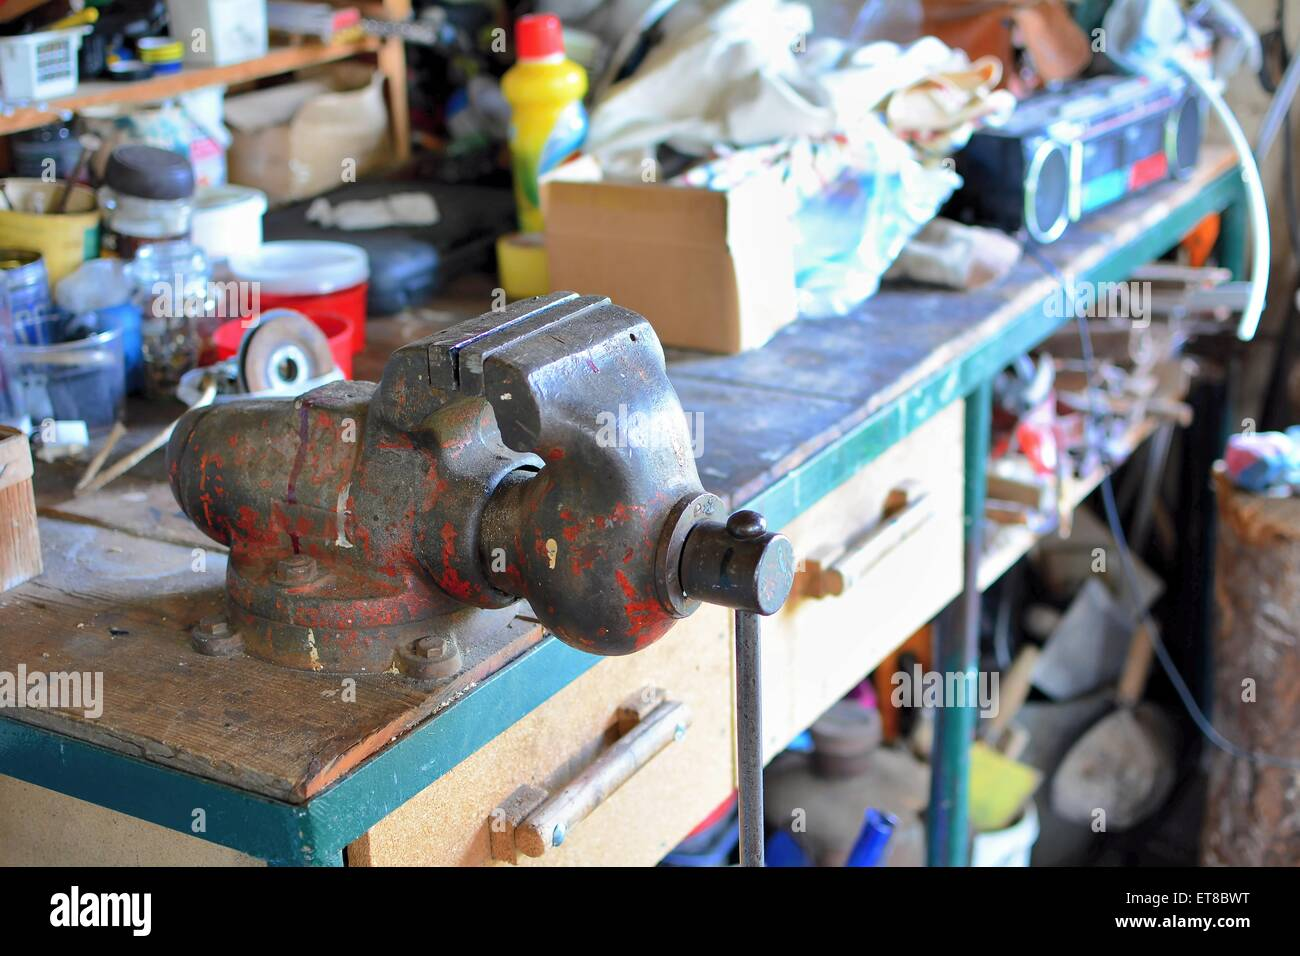 Messy table with old metal rusty vice and other working tools in the workshop. - Stock Image